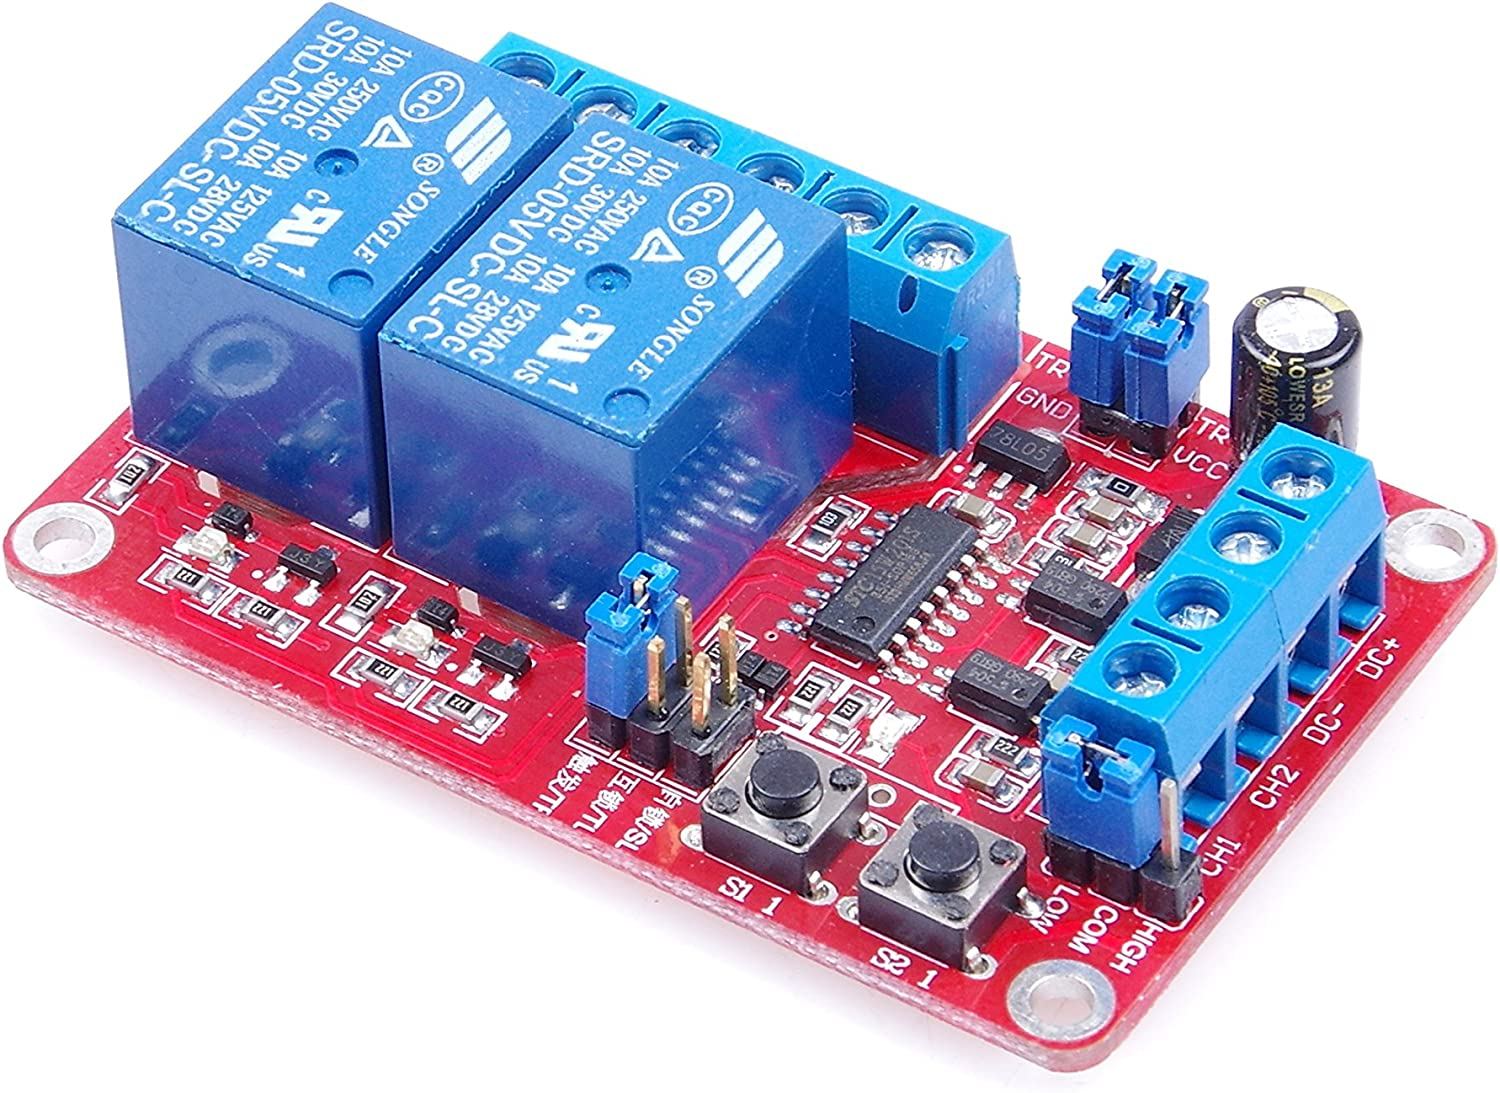 LM YN 2-Channel Relay Control Module Interlock Self-Lock Trigger 3 in 1 Relay Module High Low Level Trigger with Indicators for Household Appliances Control PLC Industrial Control Arduino (5V): Home & Kitchen